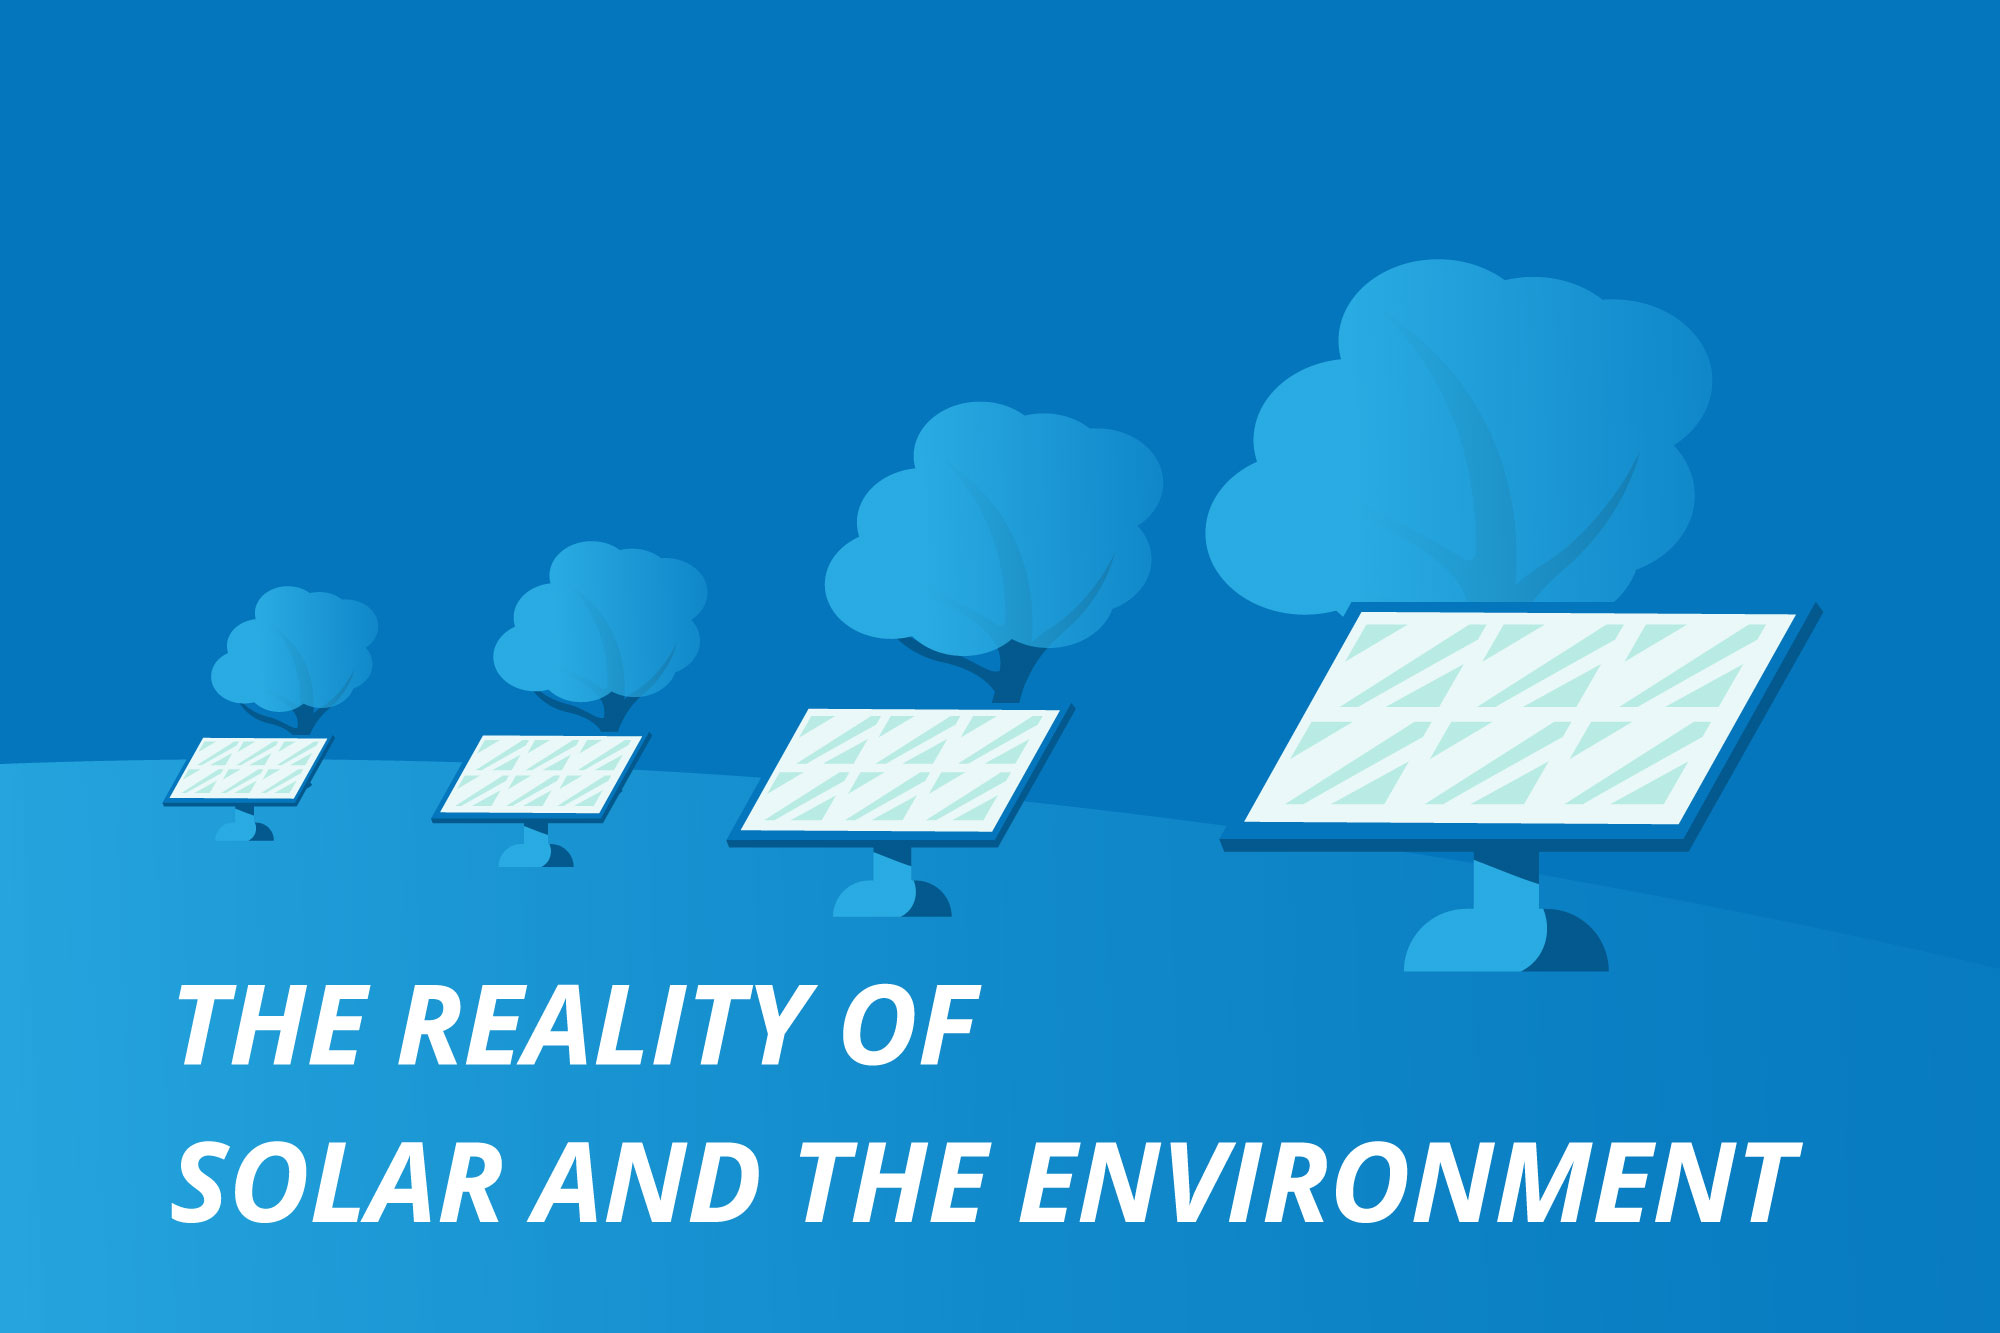 SOLAR REALITY AND THE ENVIRONMENT